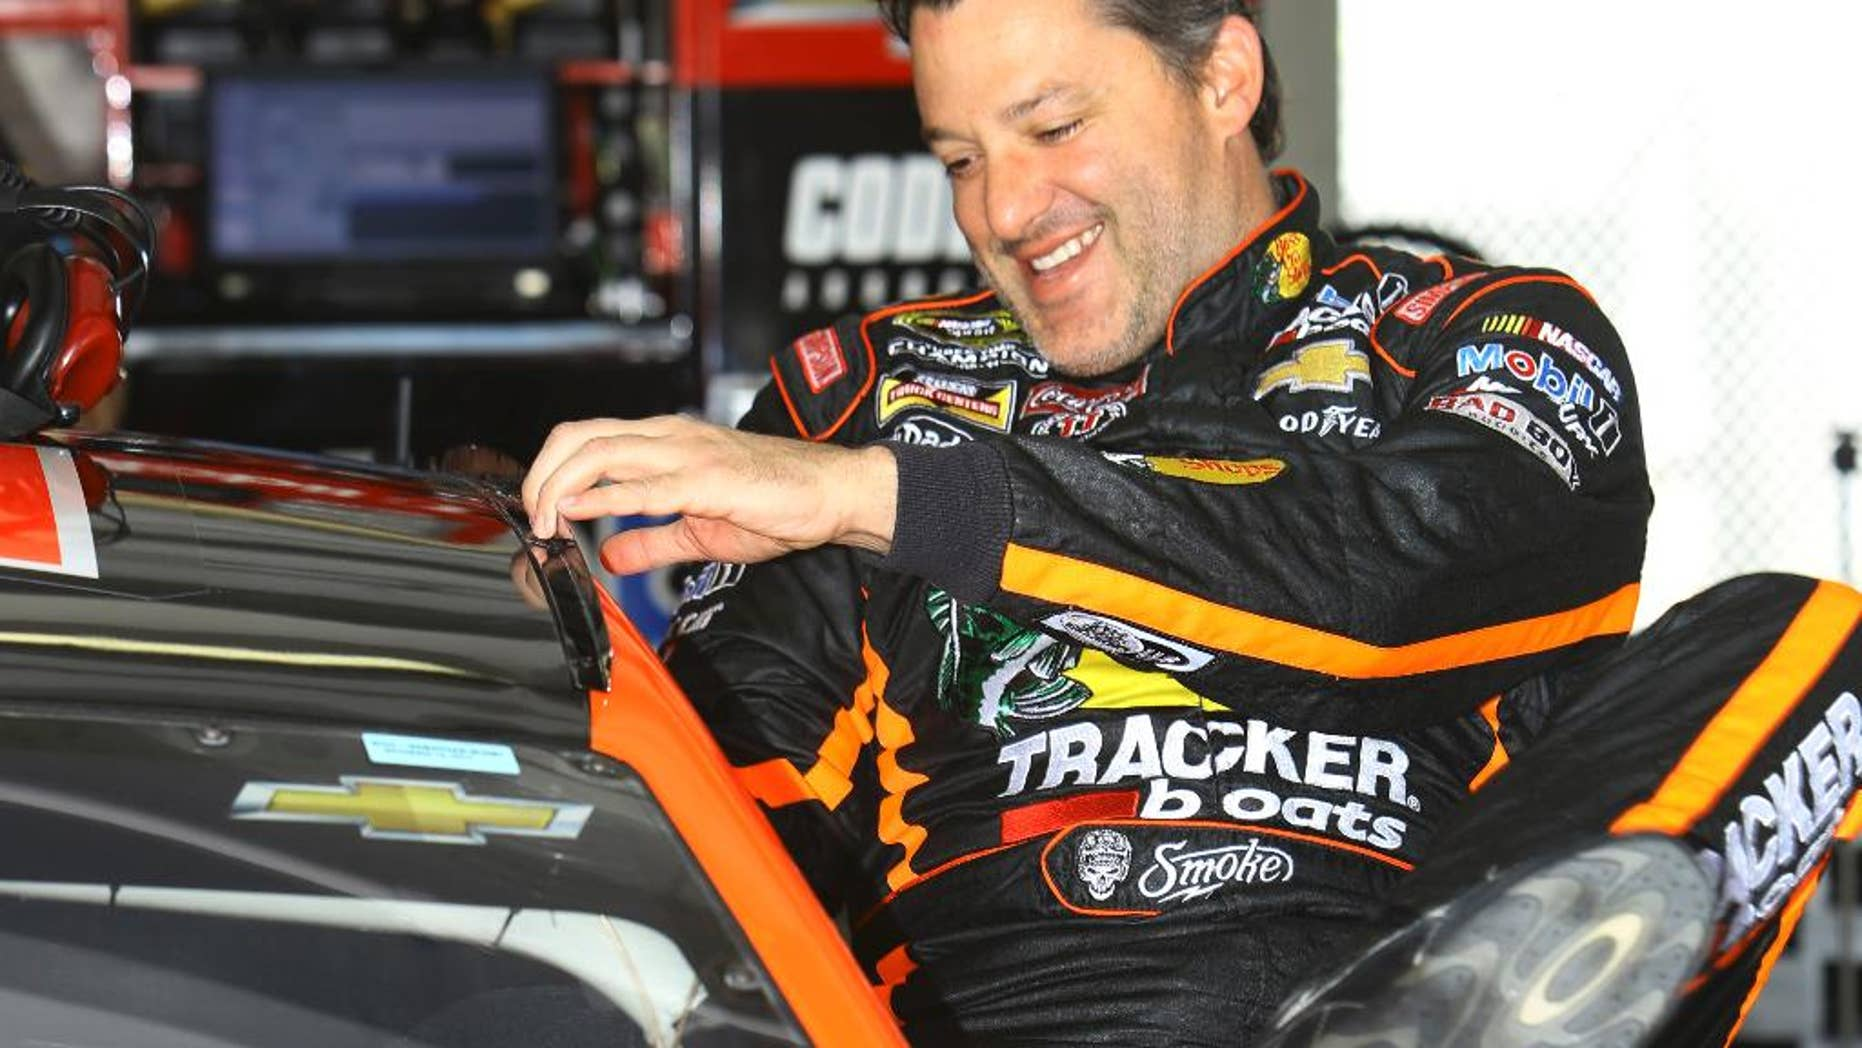 NASCAR driver Tony Stewart gets in his car before practice at Homestead-Miami Speedway, Friday, Nov. 14, 2014, in Homestead, Fla. (AP Photo/David Graham)